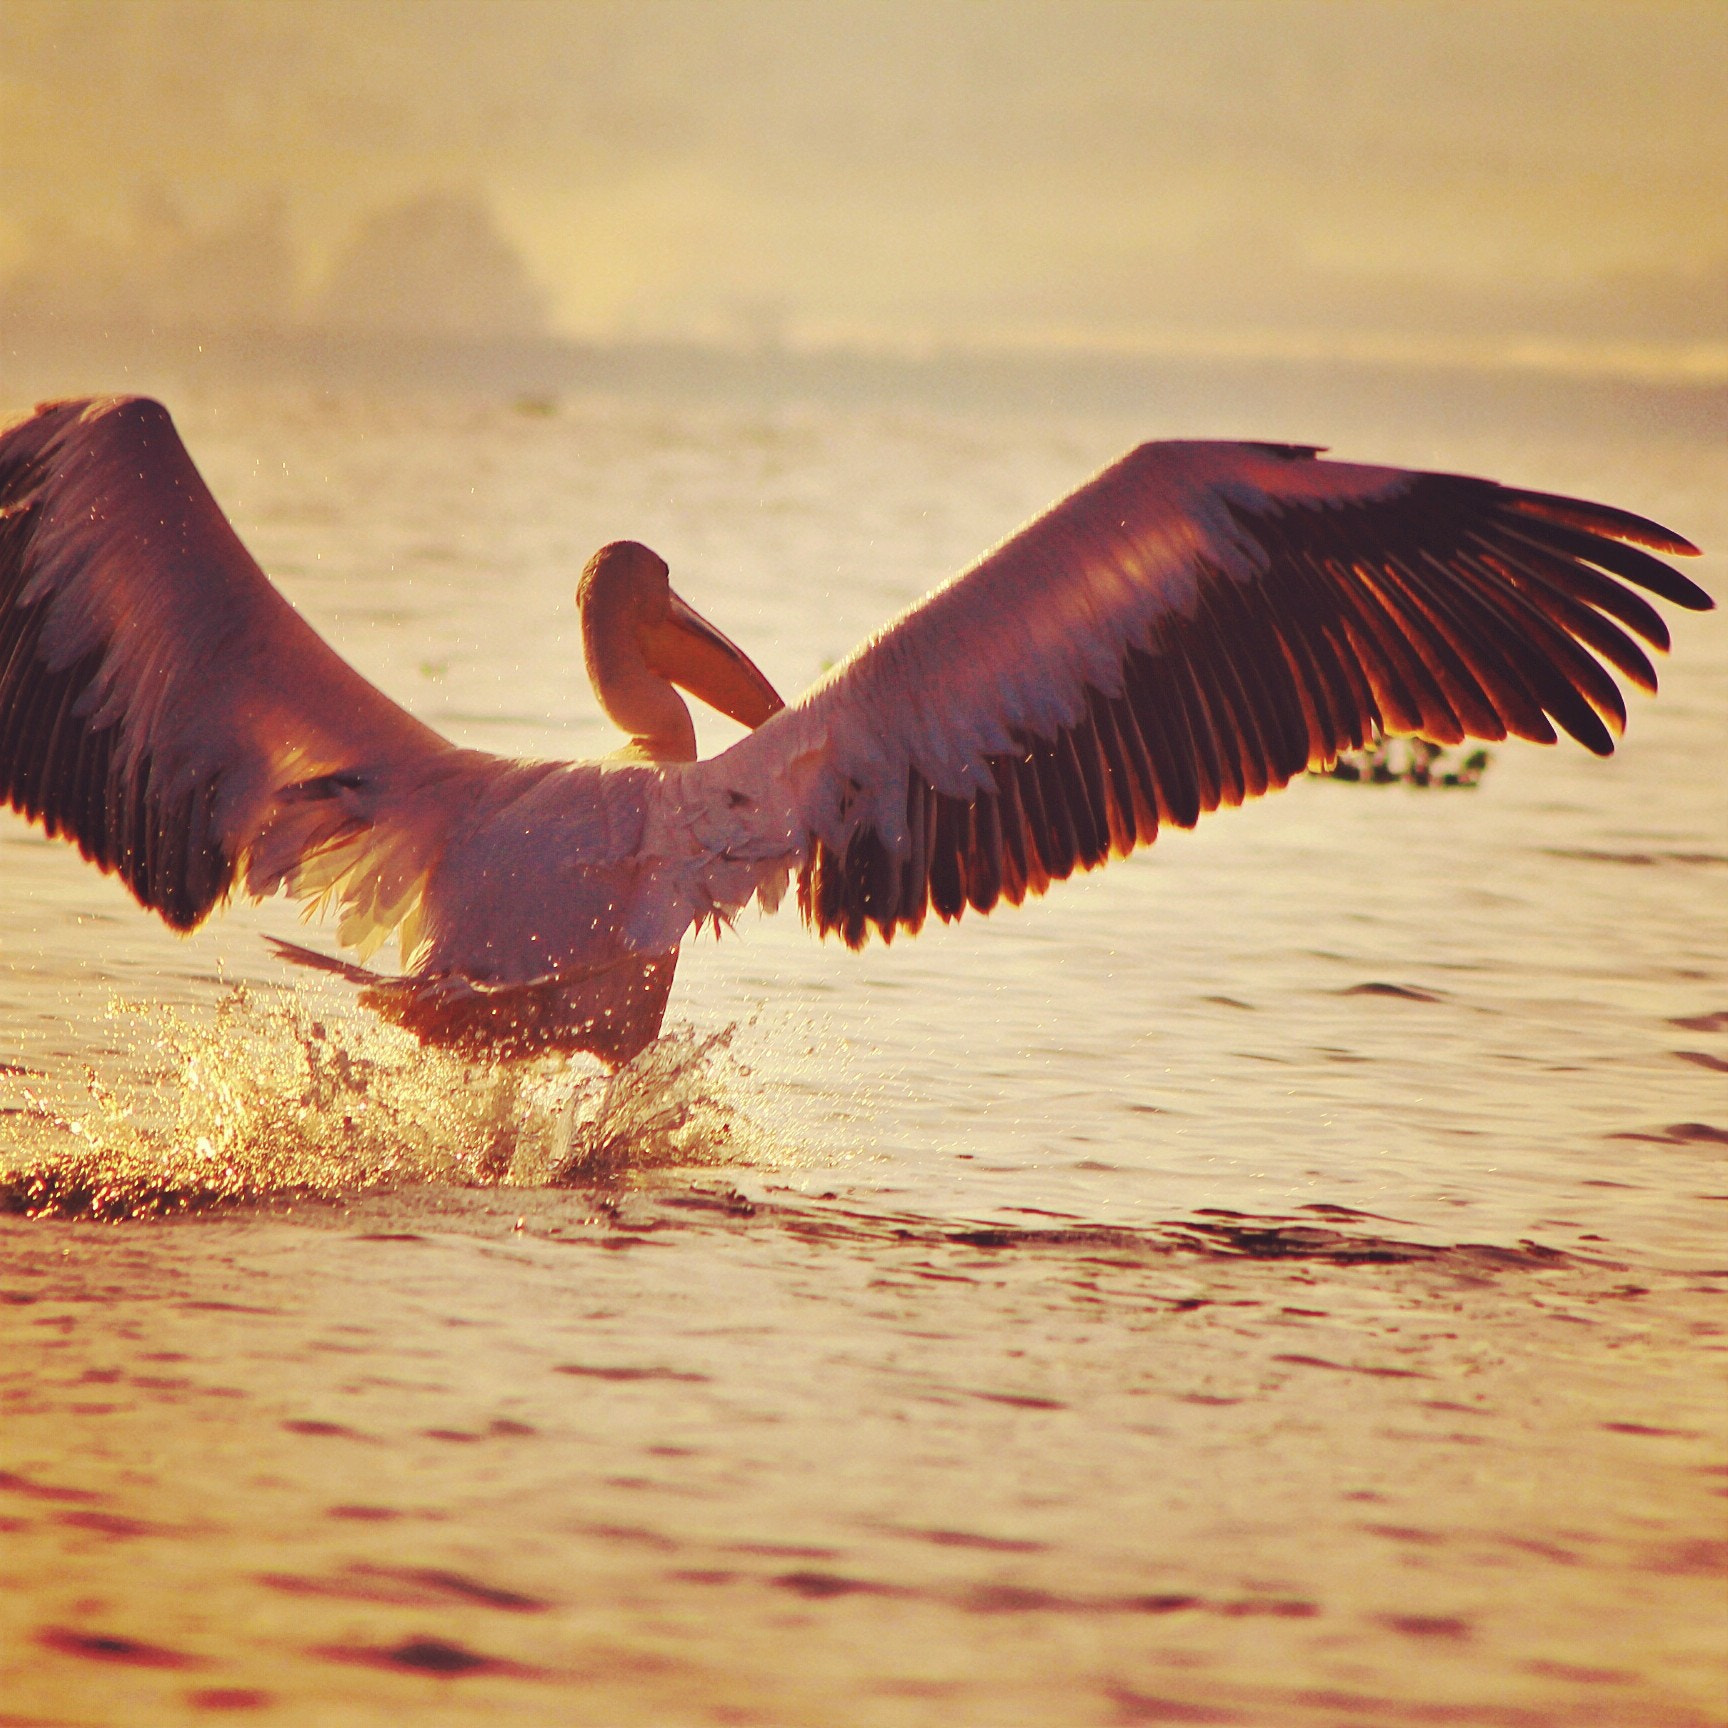 Photograph Take off by Peter Ndung'u on 500px